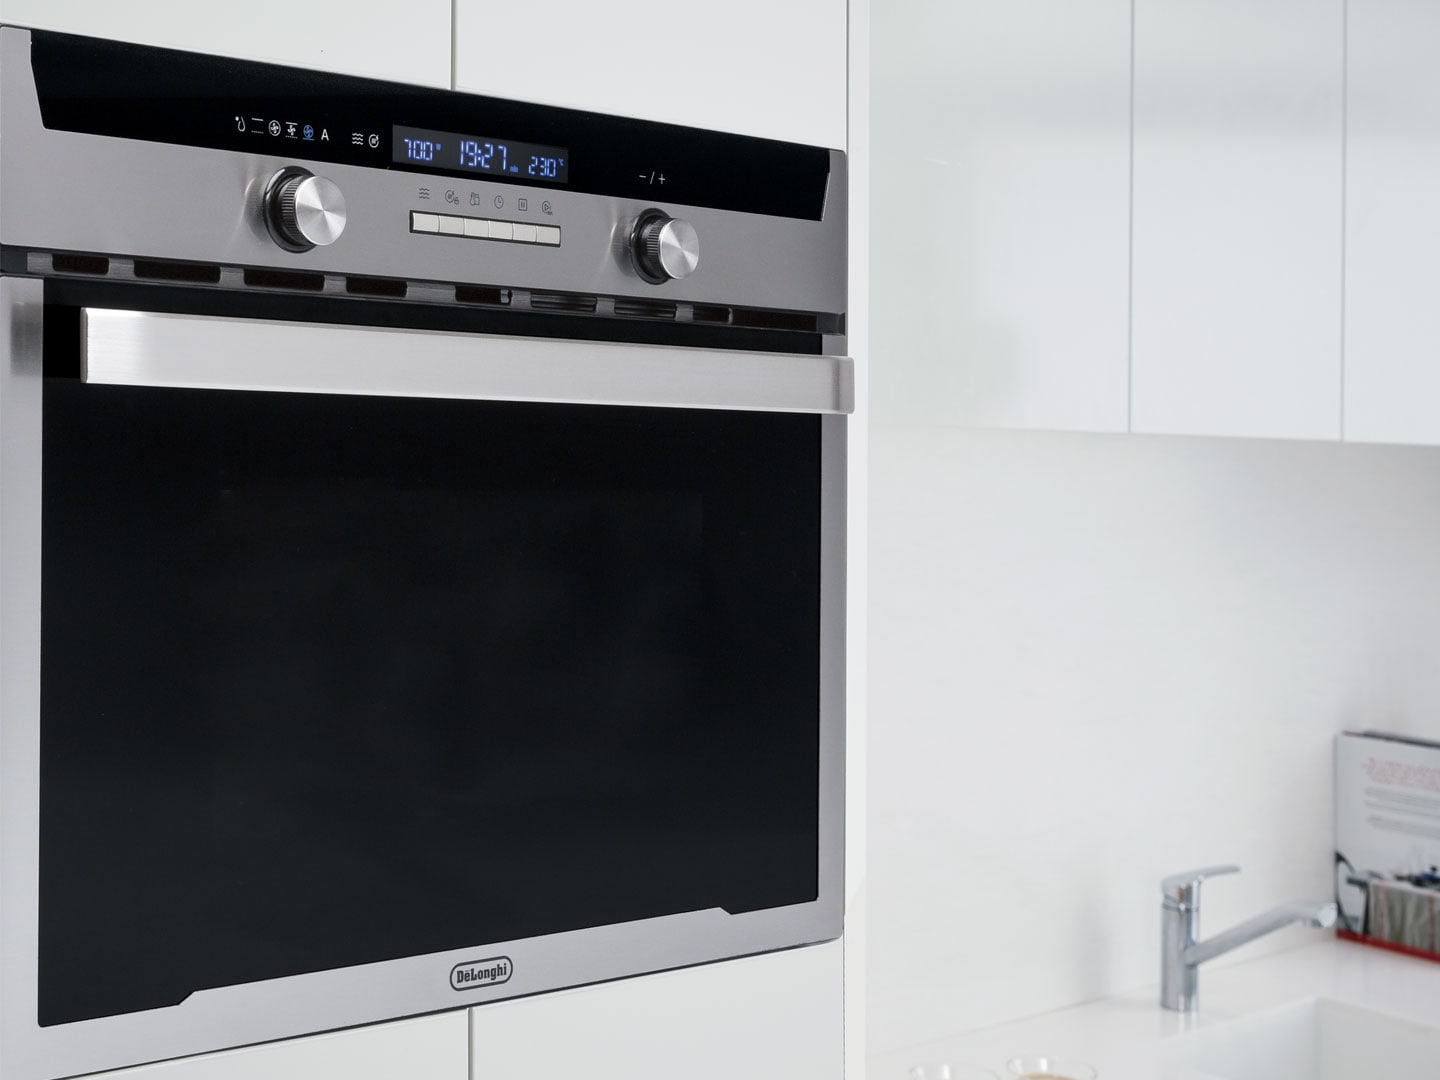 Combi Speed Oven With Microwave Grill Delonghi Australia